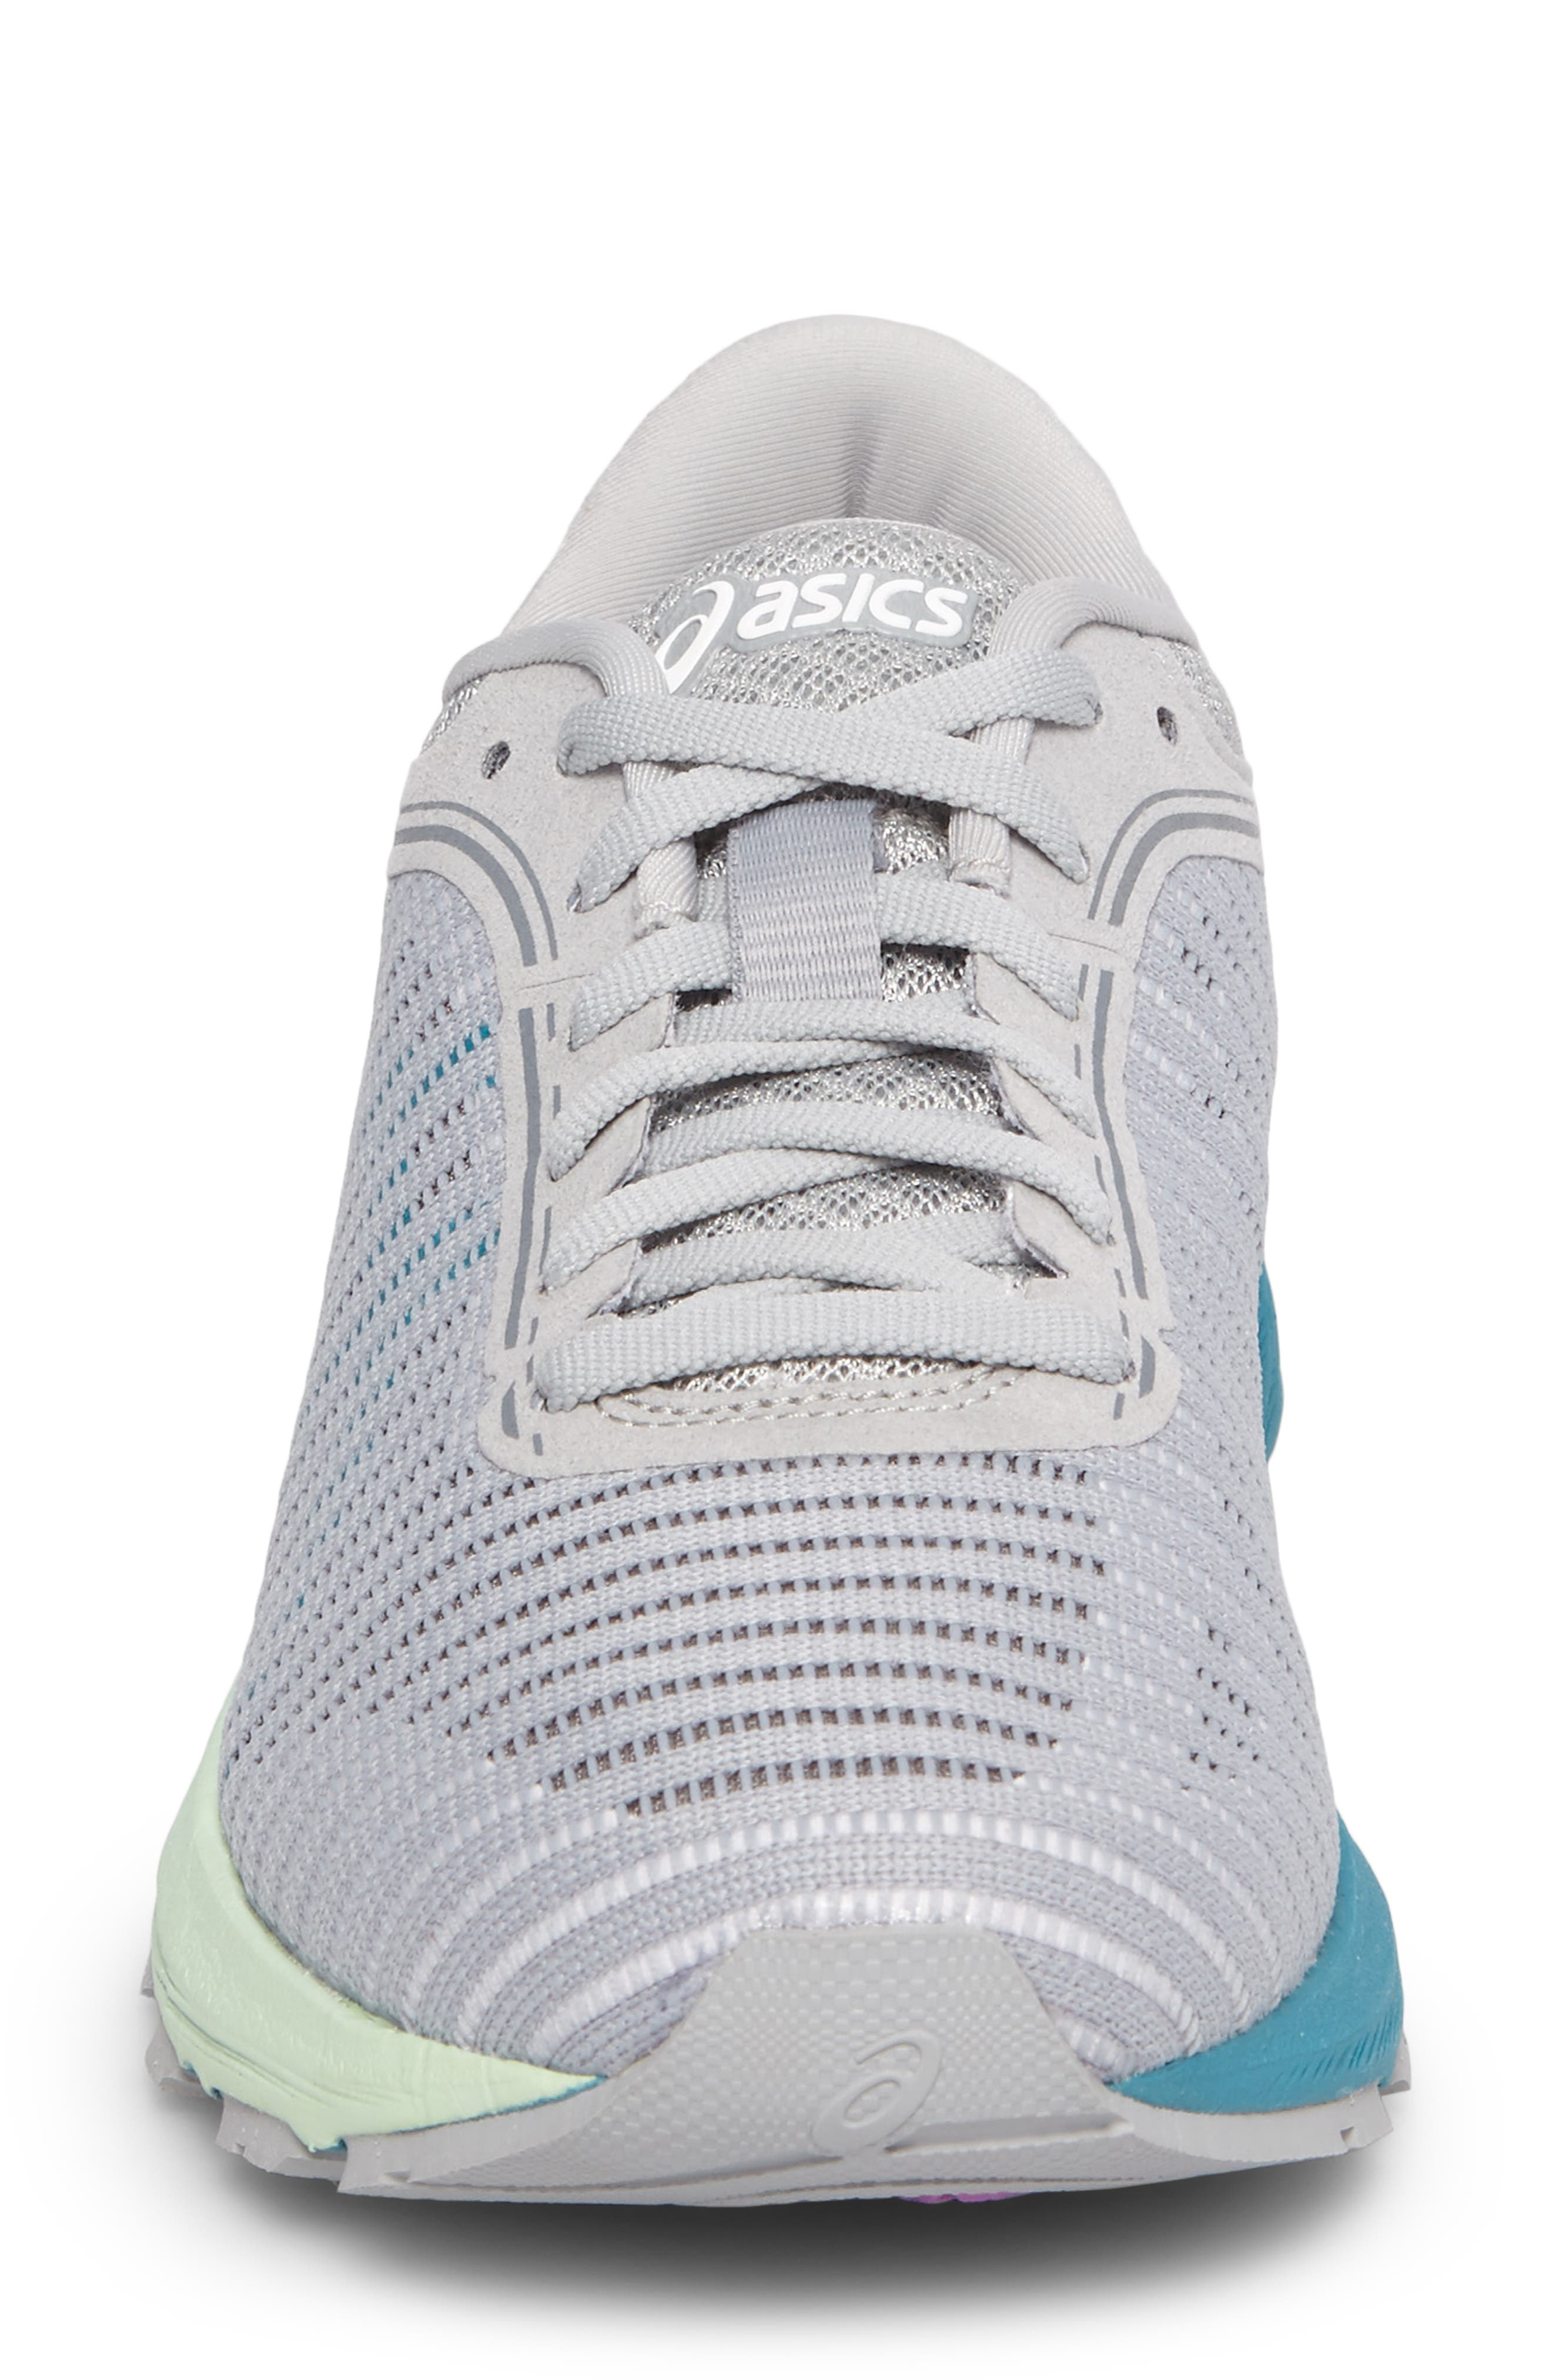 DynaFlyte 2 Running Shoe,                             Alternate thumbnail 4, color,                             MID GREY/ AQUA/ GLACIER